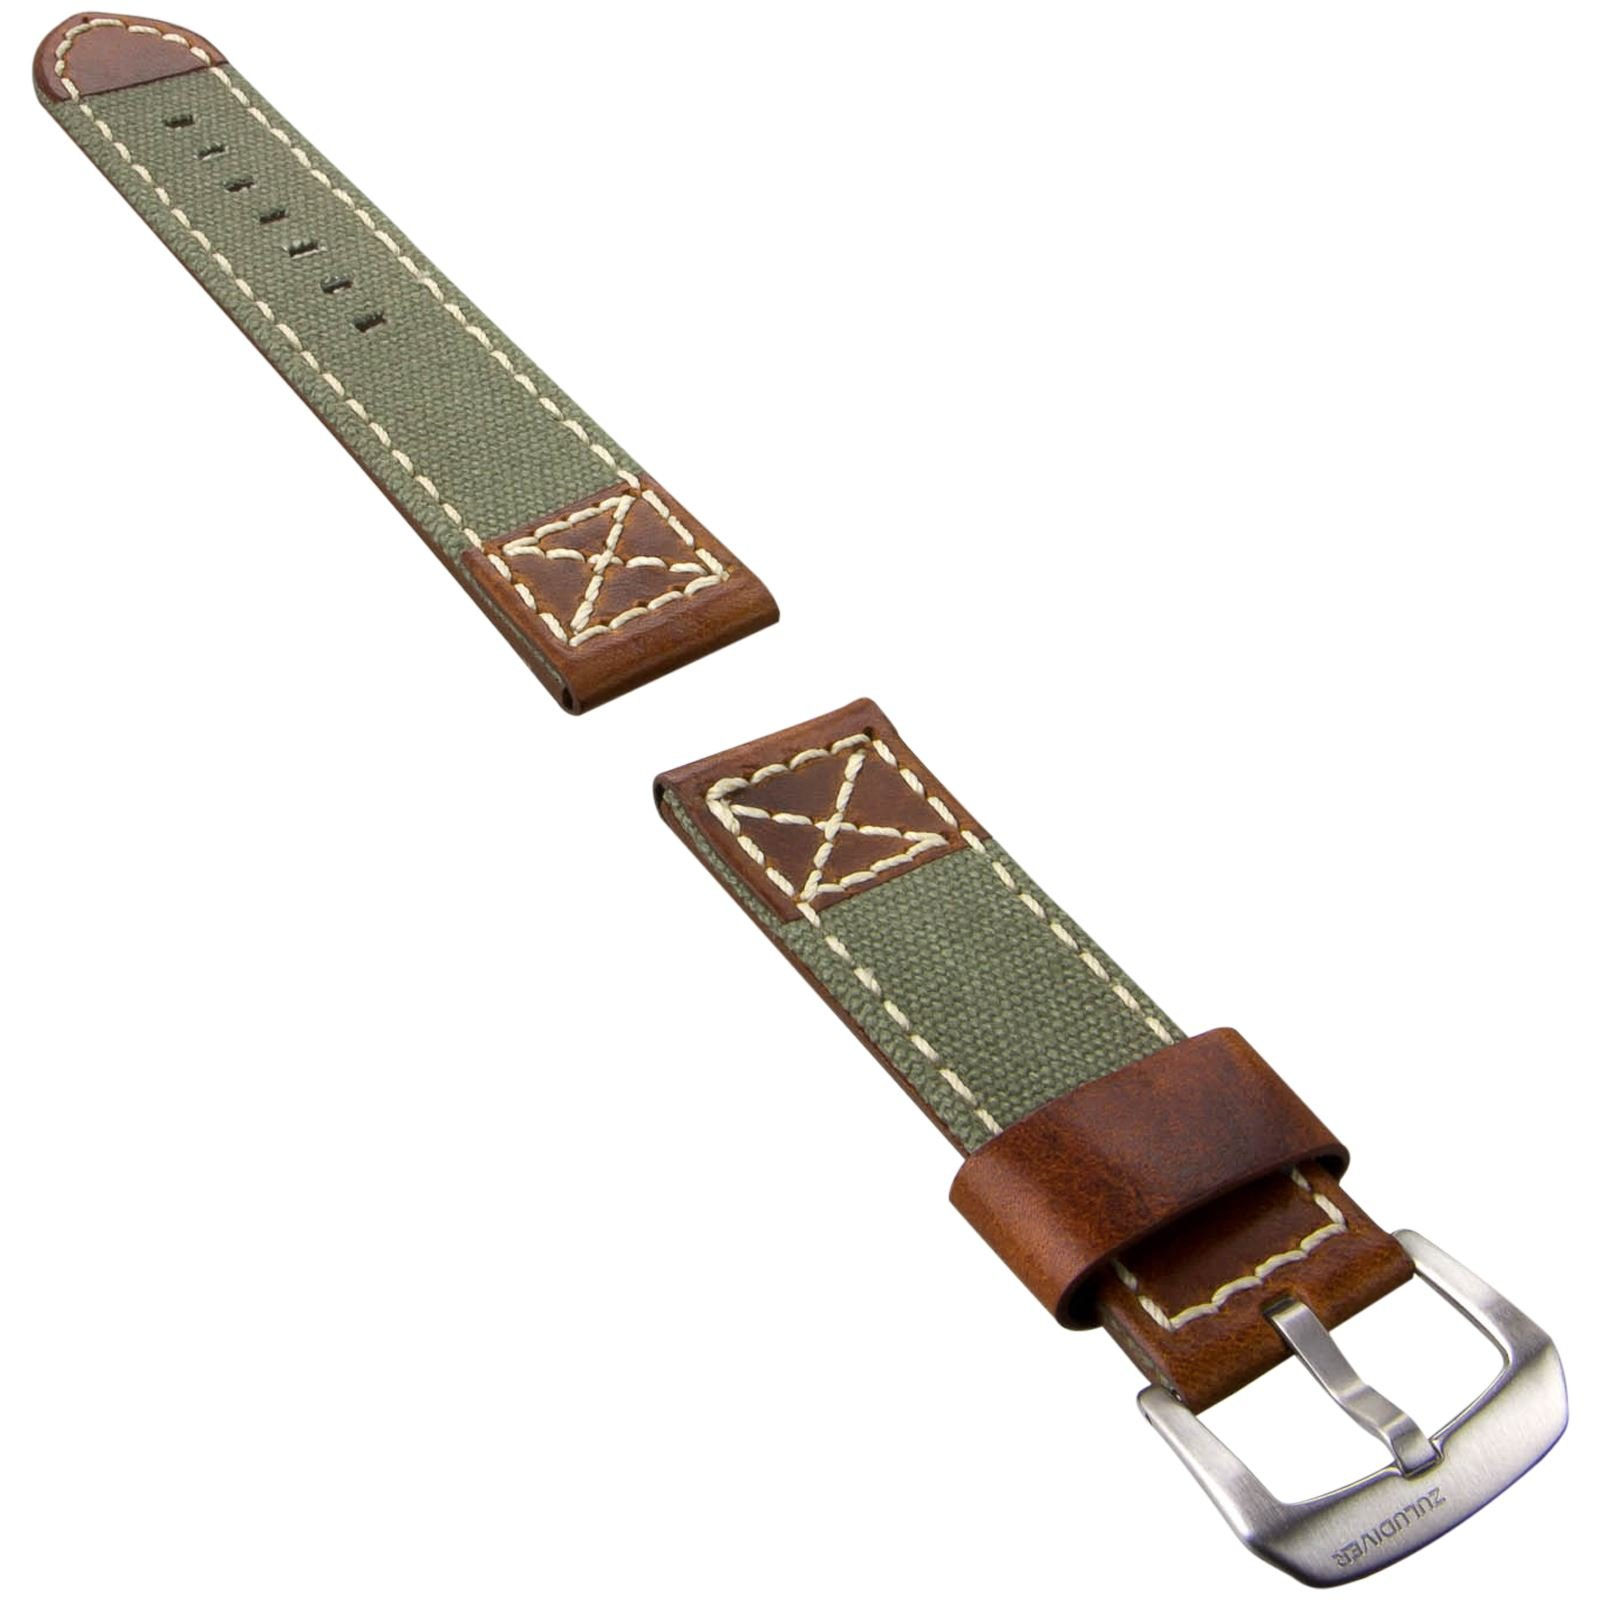 ZULUDIVER Canvas & Italian Leather Watch Strap, Army Green & Vintage Brown, 22mm by ZULUDIVER (Image #2)